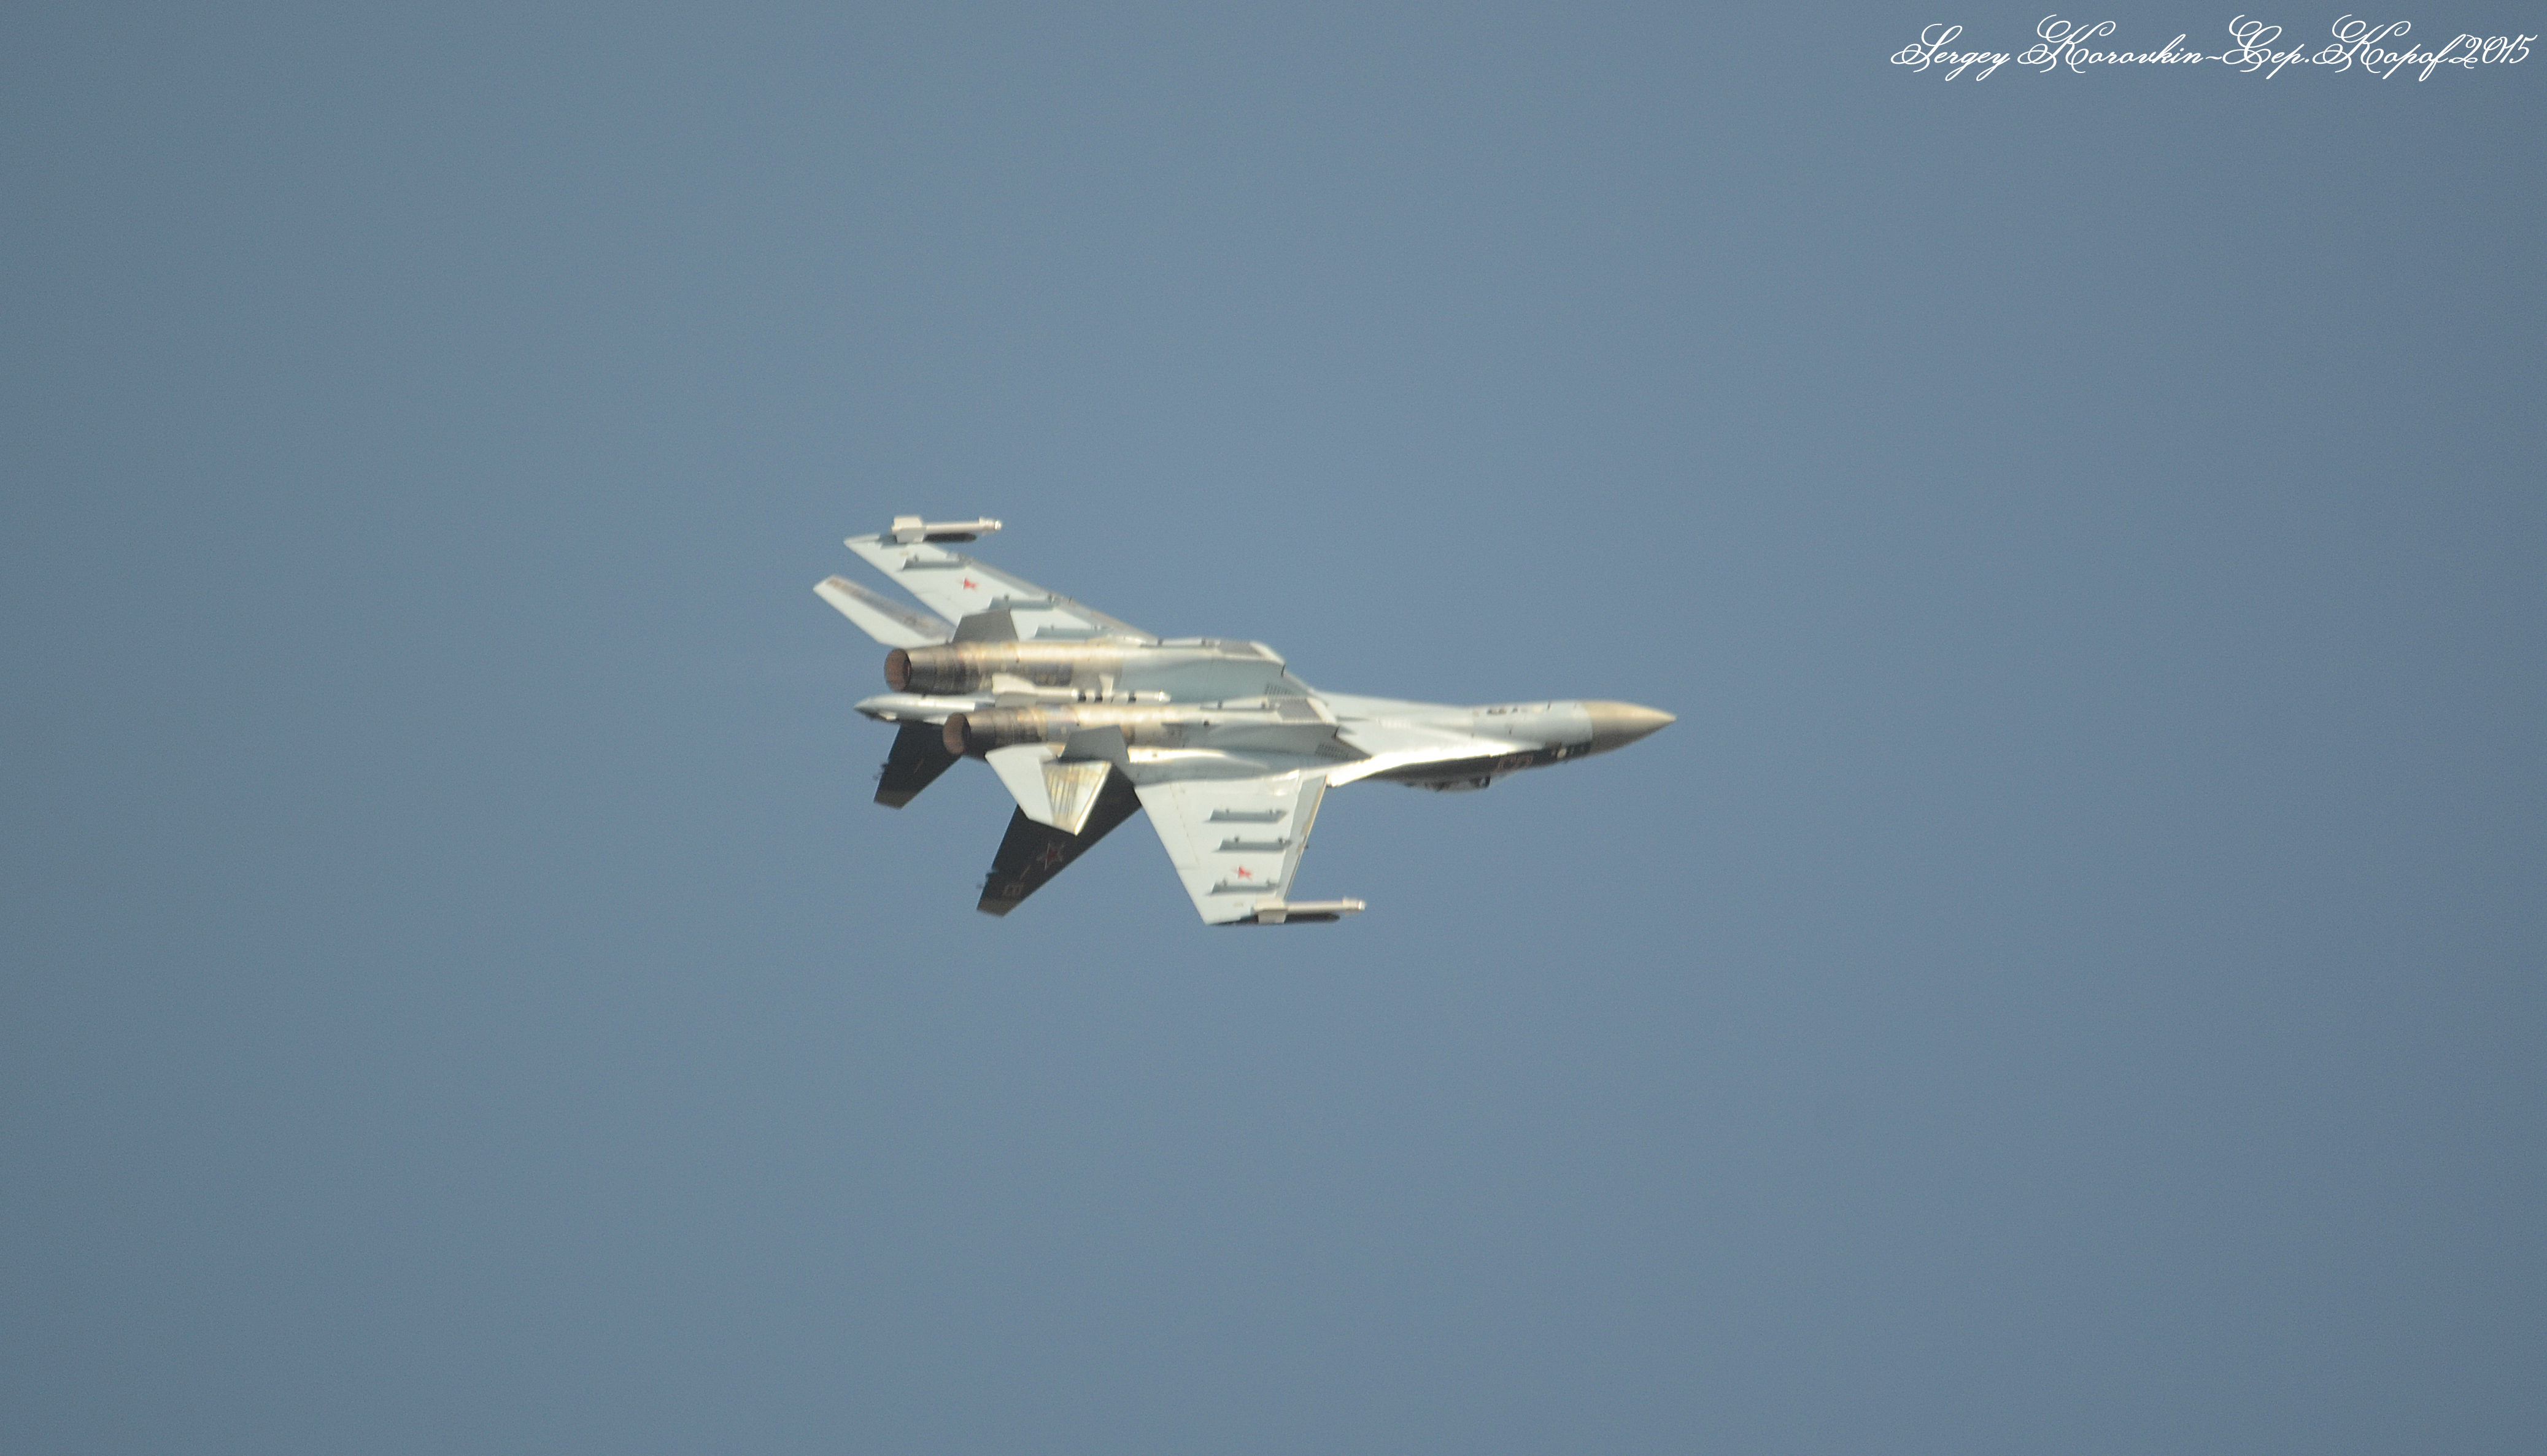 MAKS-2015 Air Show: Photos and Discussion - Page 2 0_17b3eb_12211a3c_orig